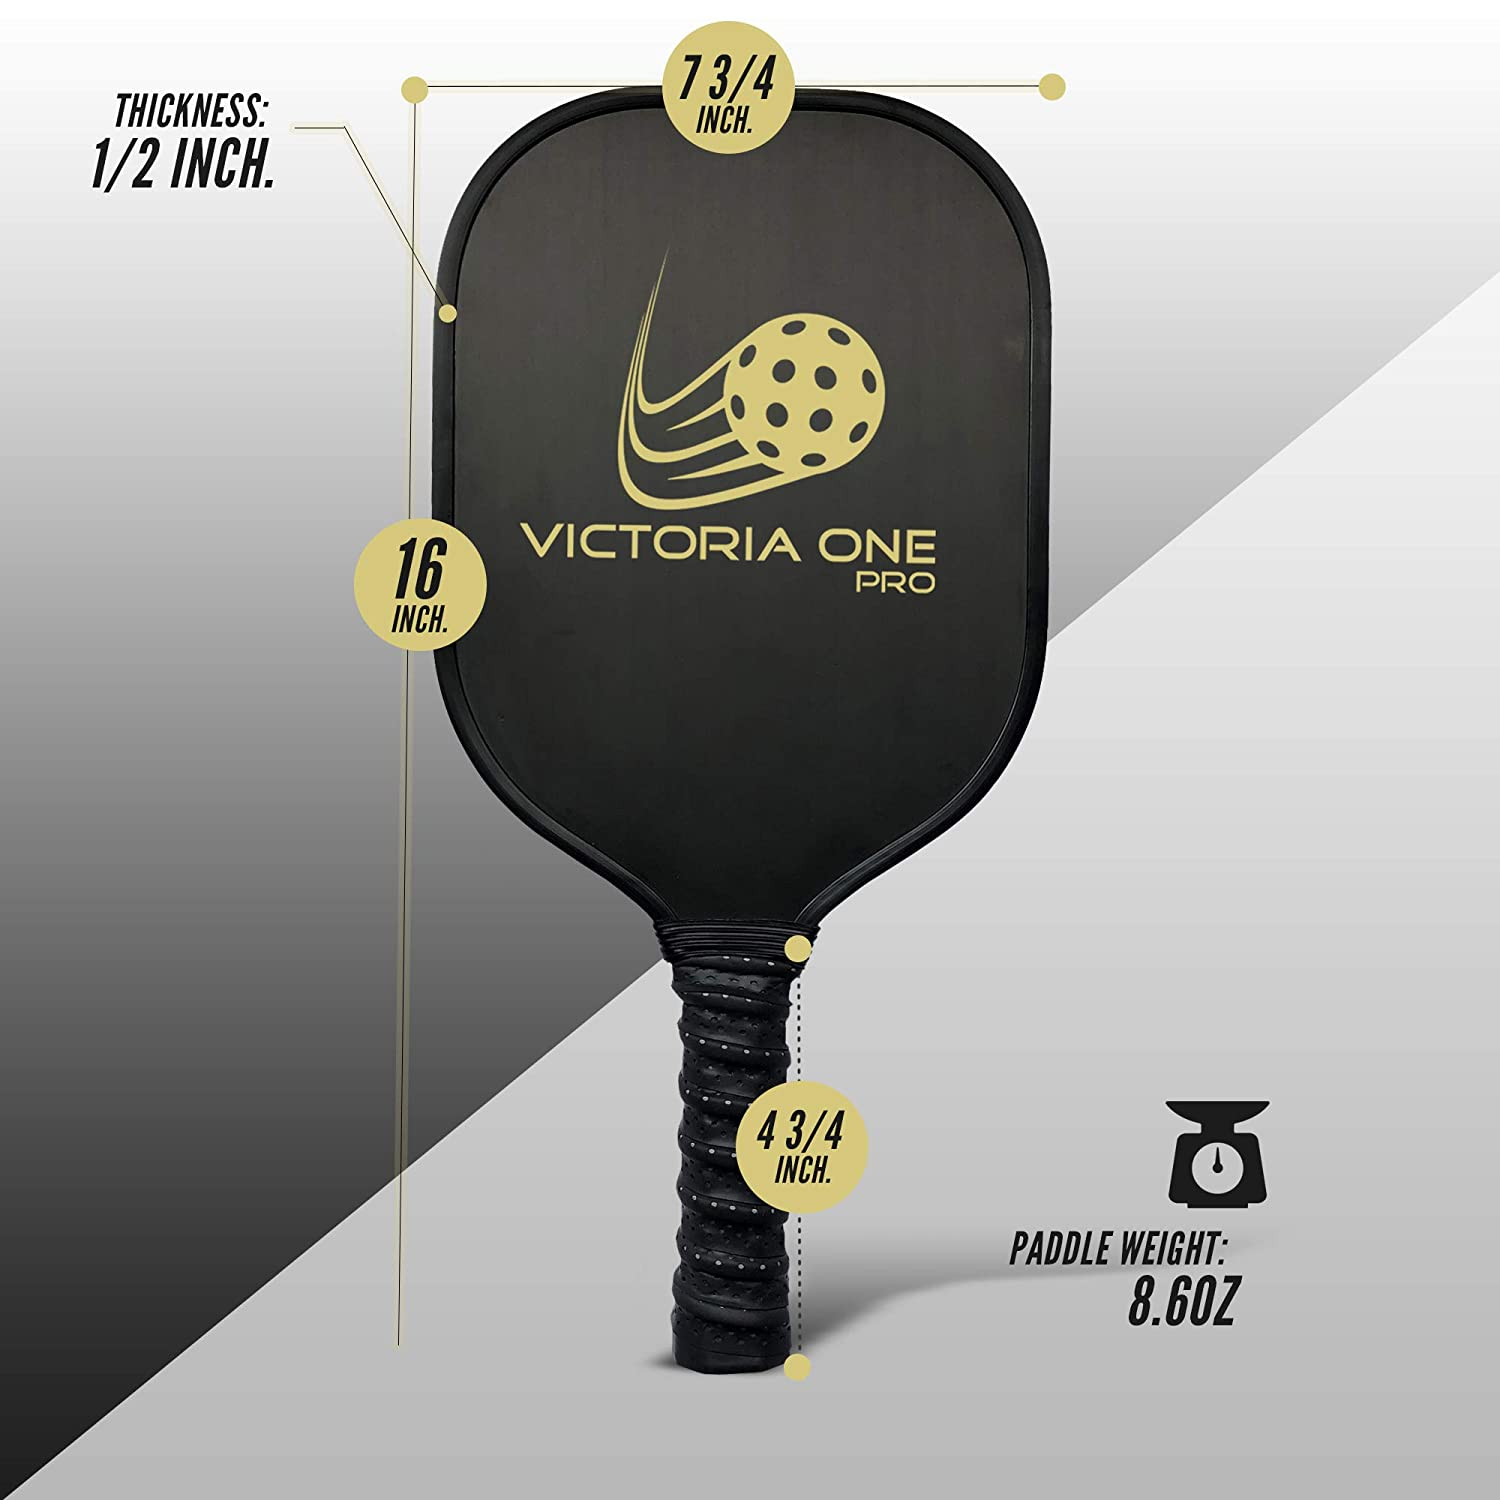 Amazon.com: Victoria One Pro Pickleball - Juego de 2 palas ...